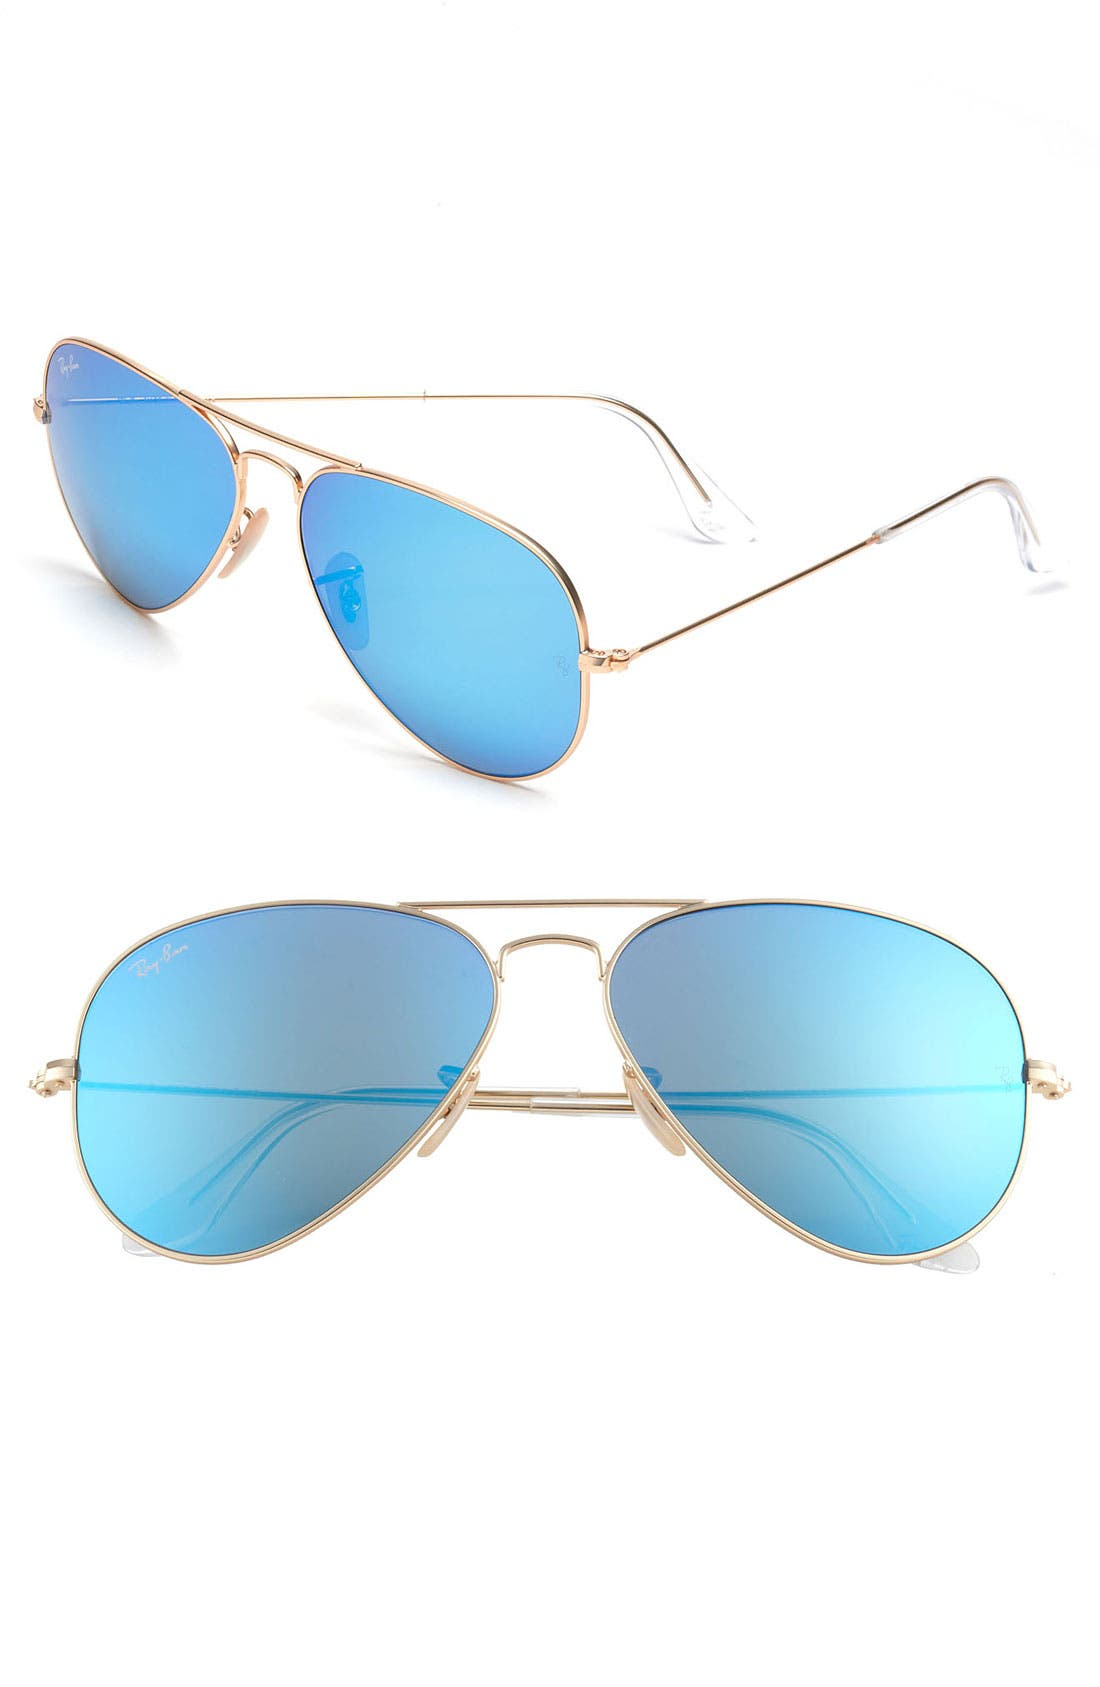 Alternate Image 1 Selected - Ray-Ban Standard Original 58mm Aviator Sunglasses